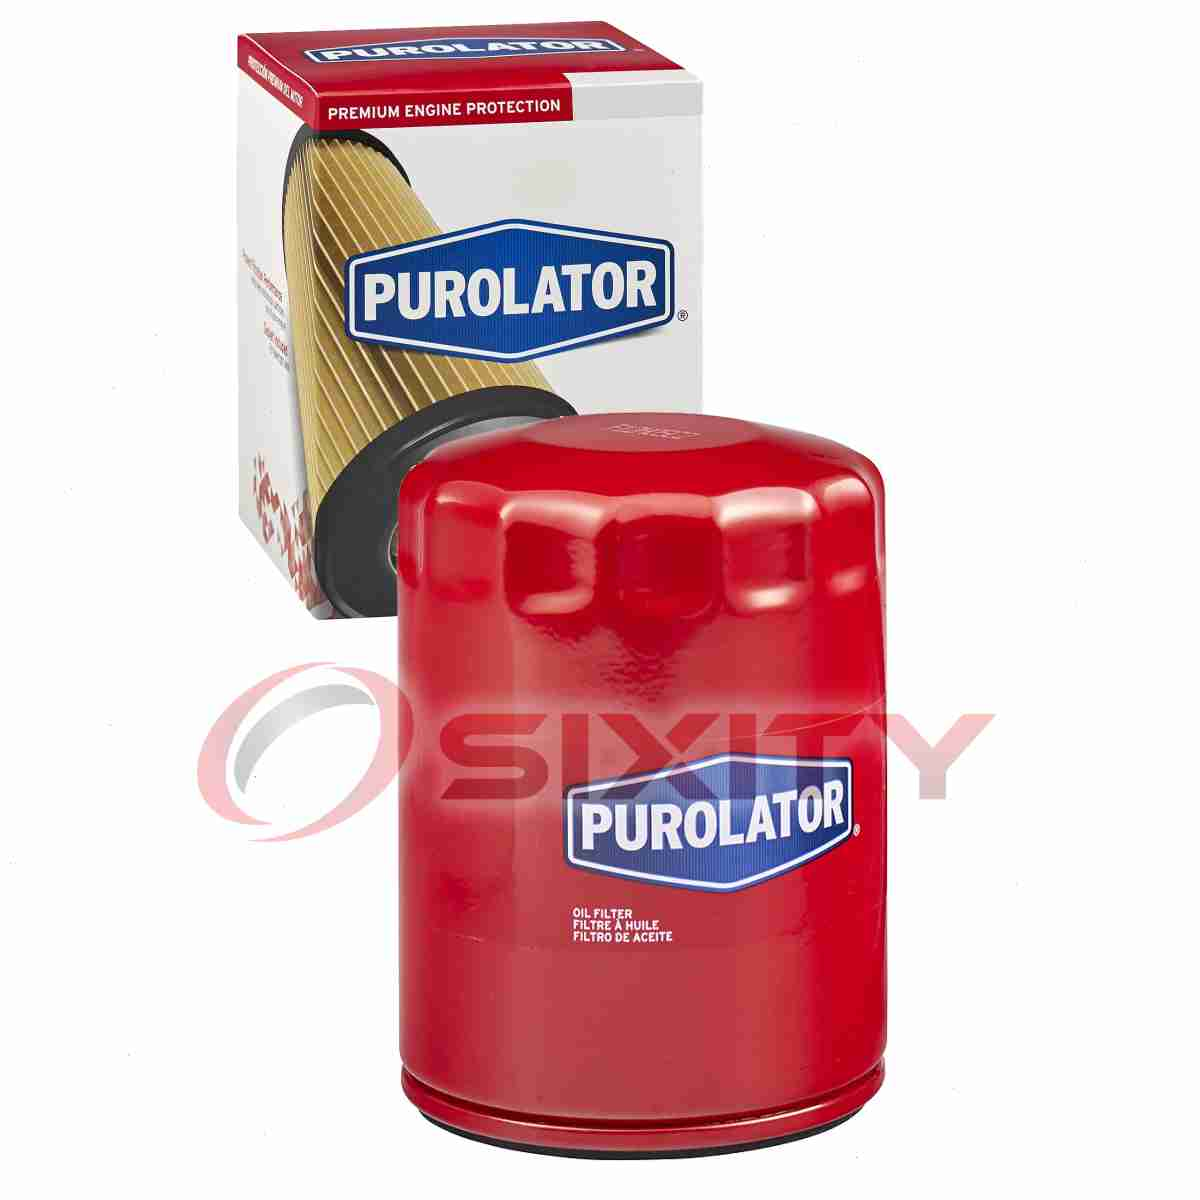 bh Purolator TECH Engine Oil Filter for 2007-2013 Chevrolet Suburban 2500